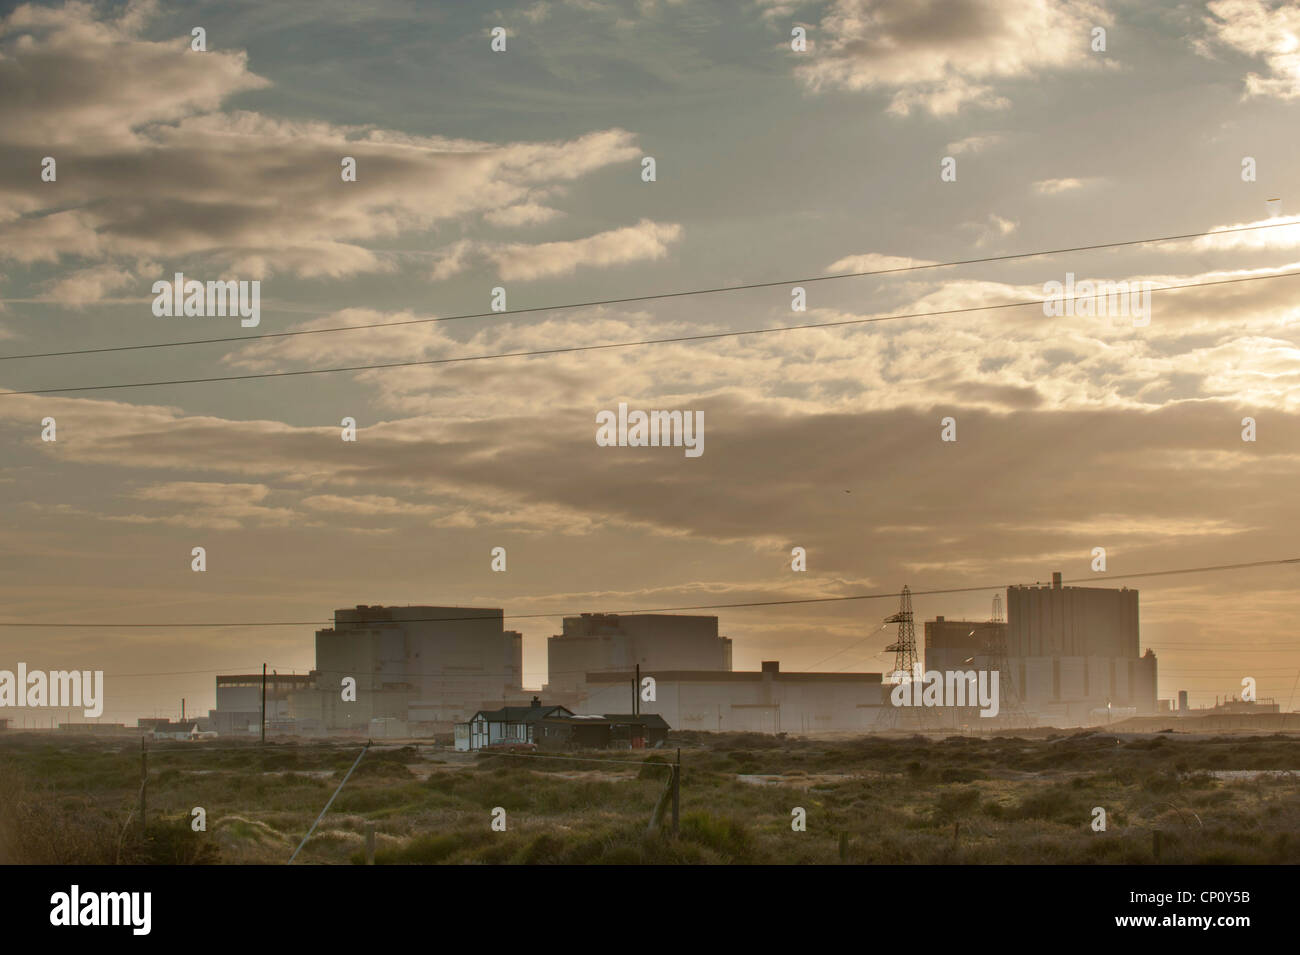 Dungeness Nuclear Power Station in Kent. - Stock Image